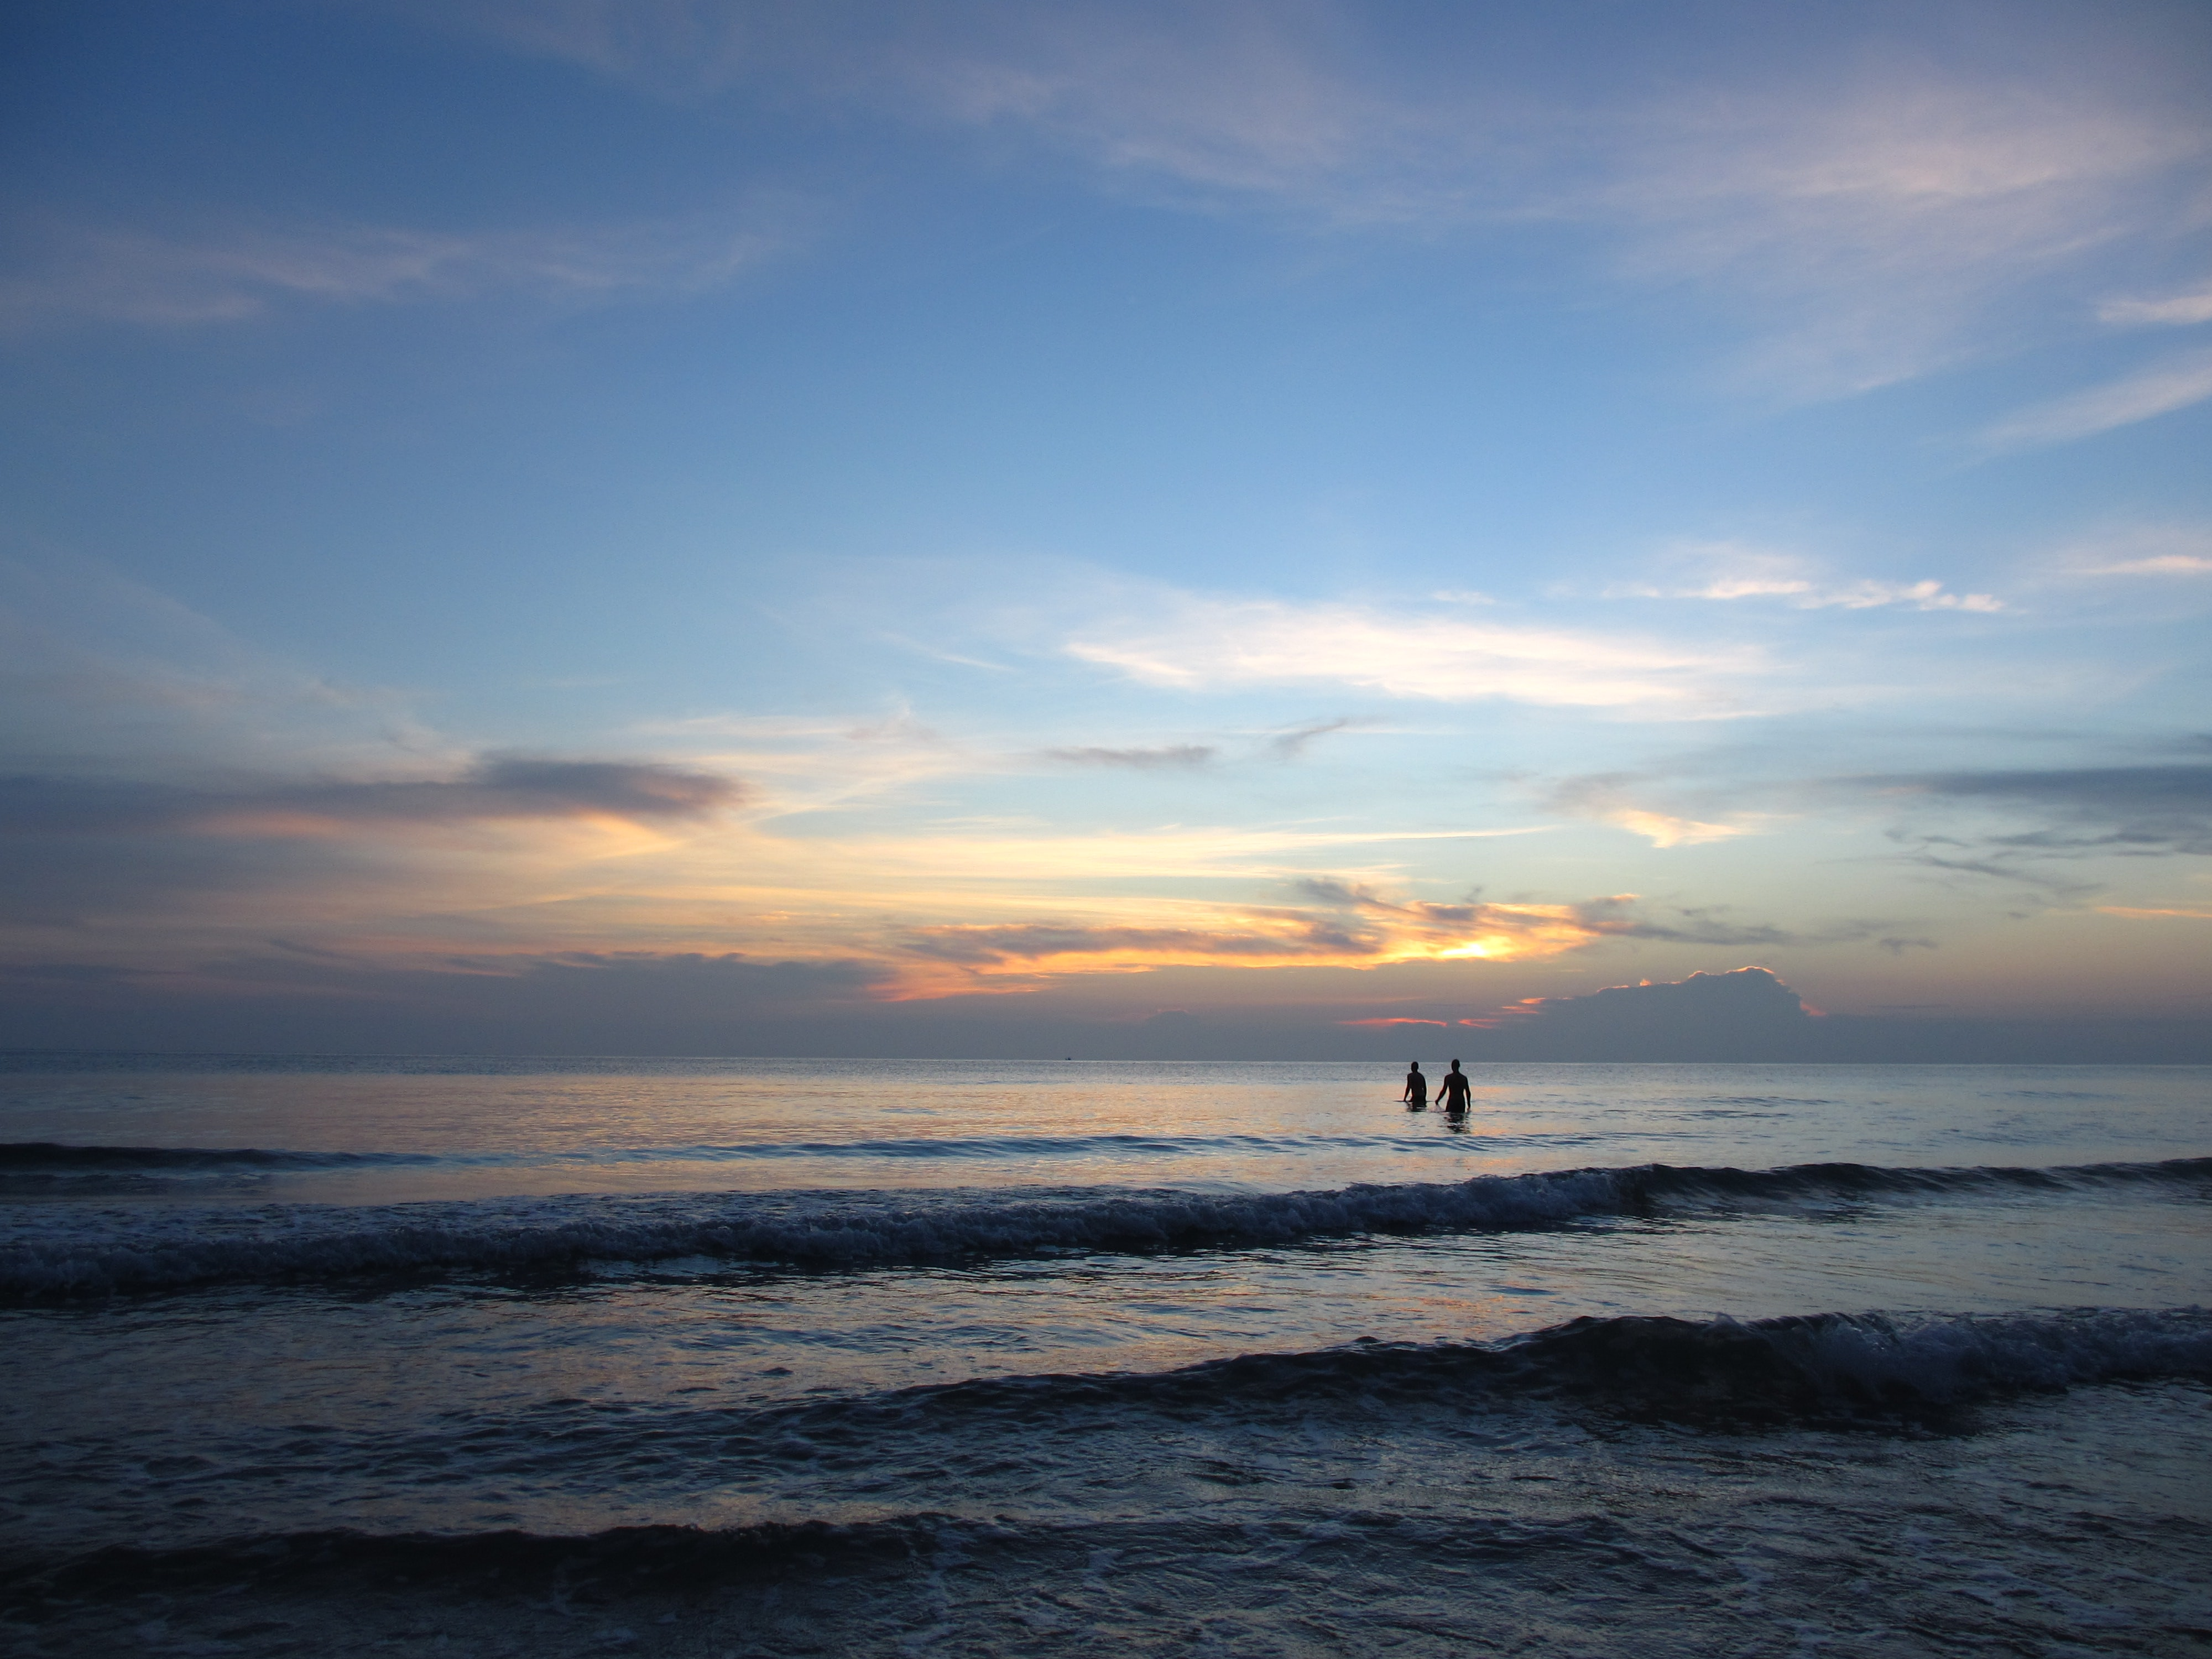 Silhouettes of two people wading through the sea at twilight